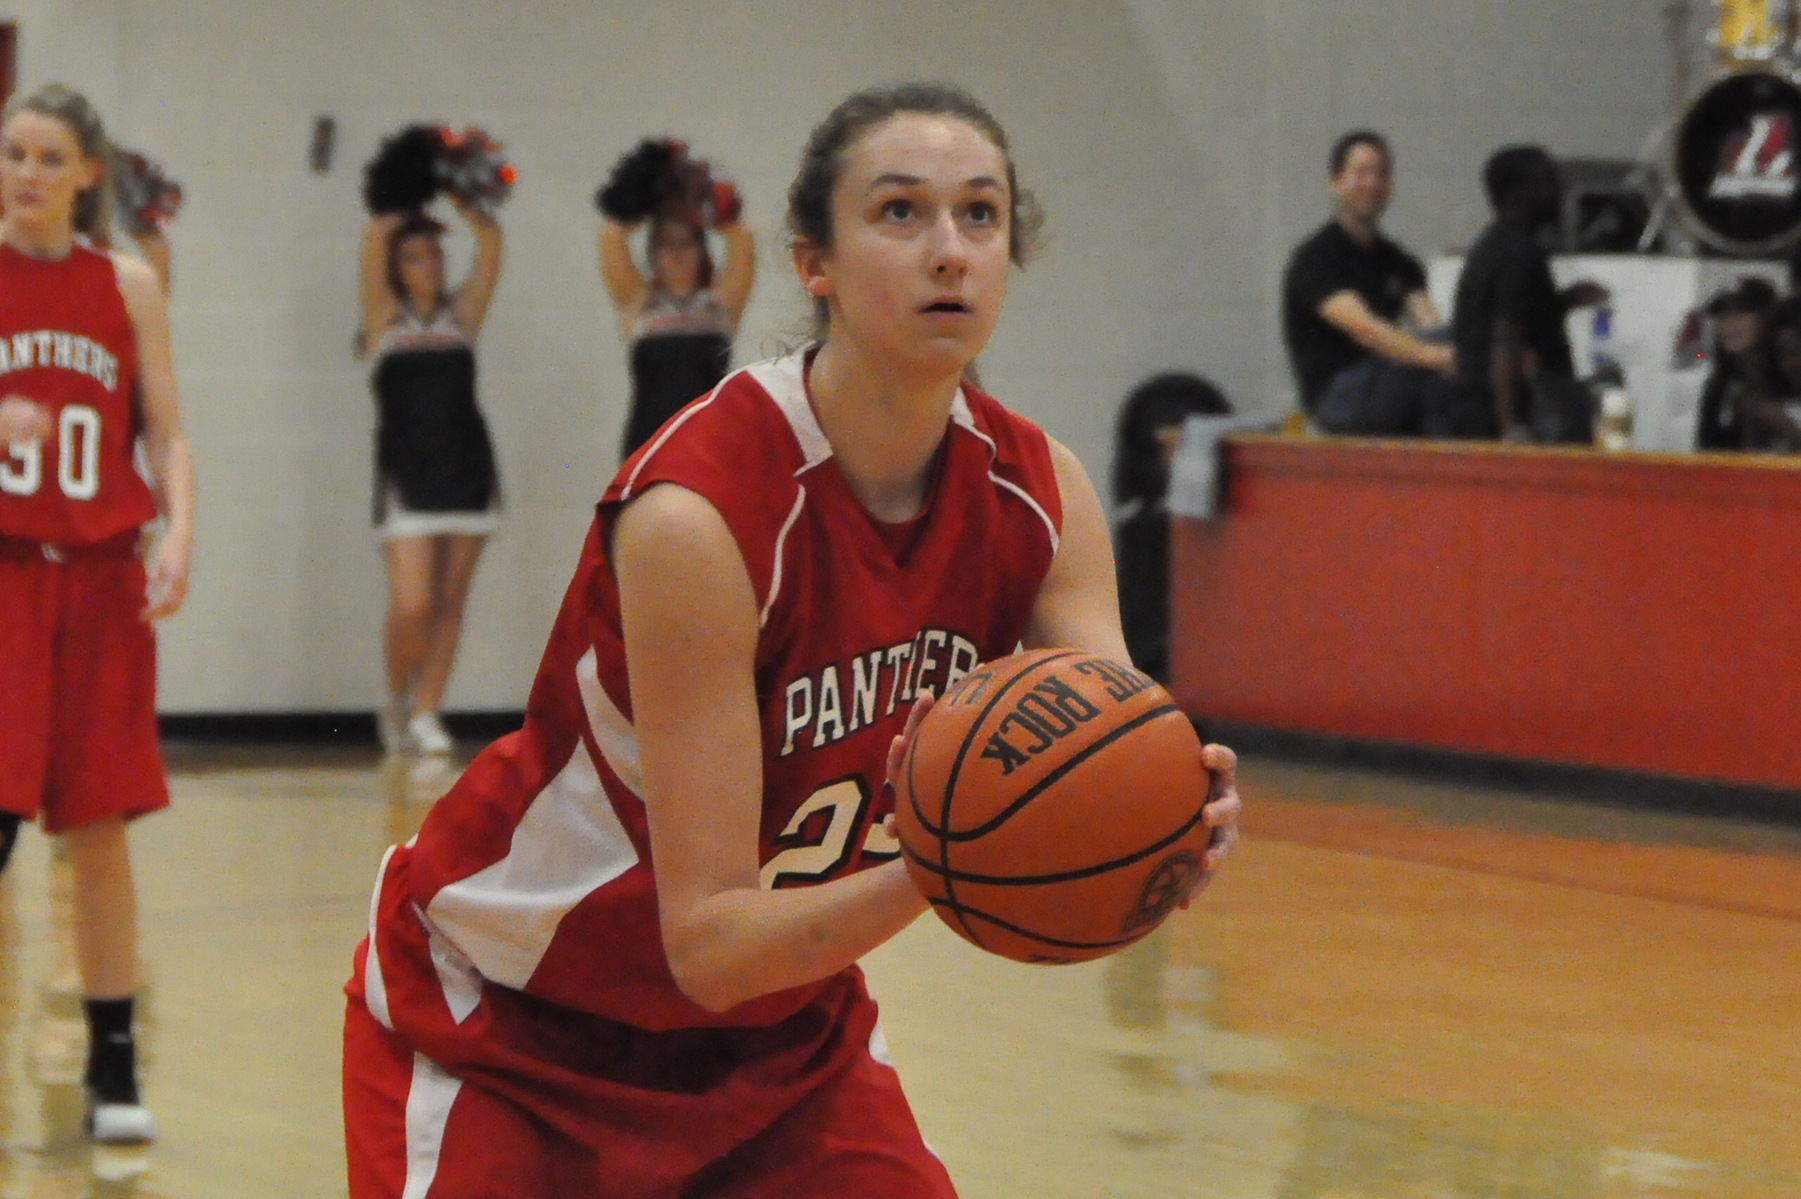 Women's Basketball: Panthers hold off Berry 72-64 to stay unbeaten